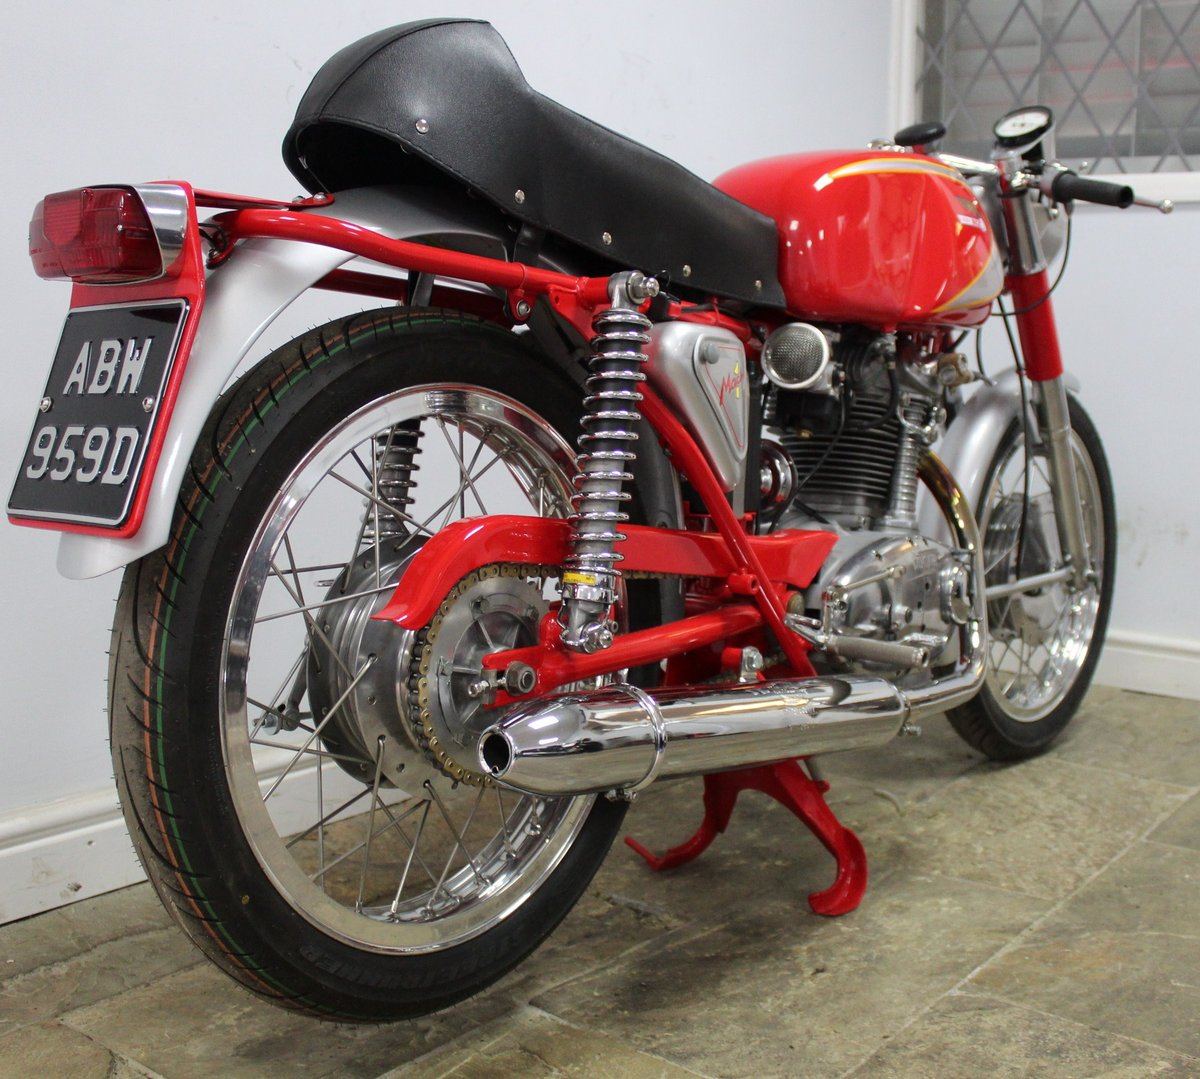 1966 Ducati Mach 1 250 cc OHC  with Five Speed Gearbox  SOLD (picture 4 of 6)